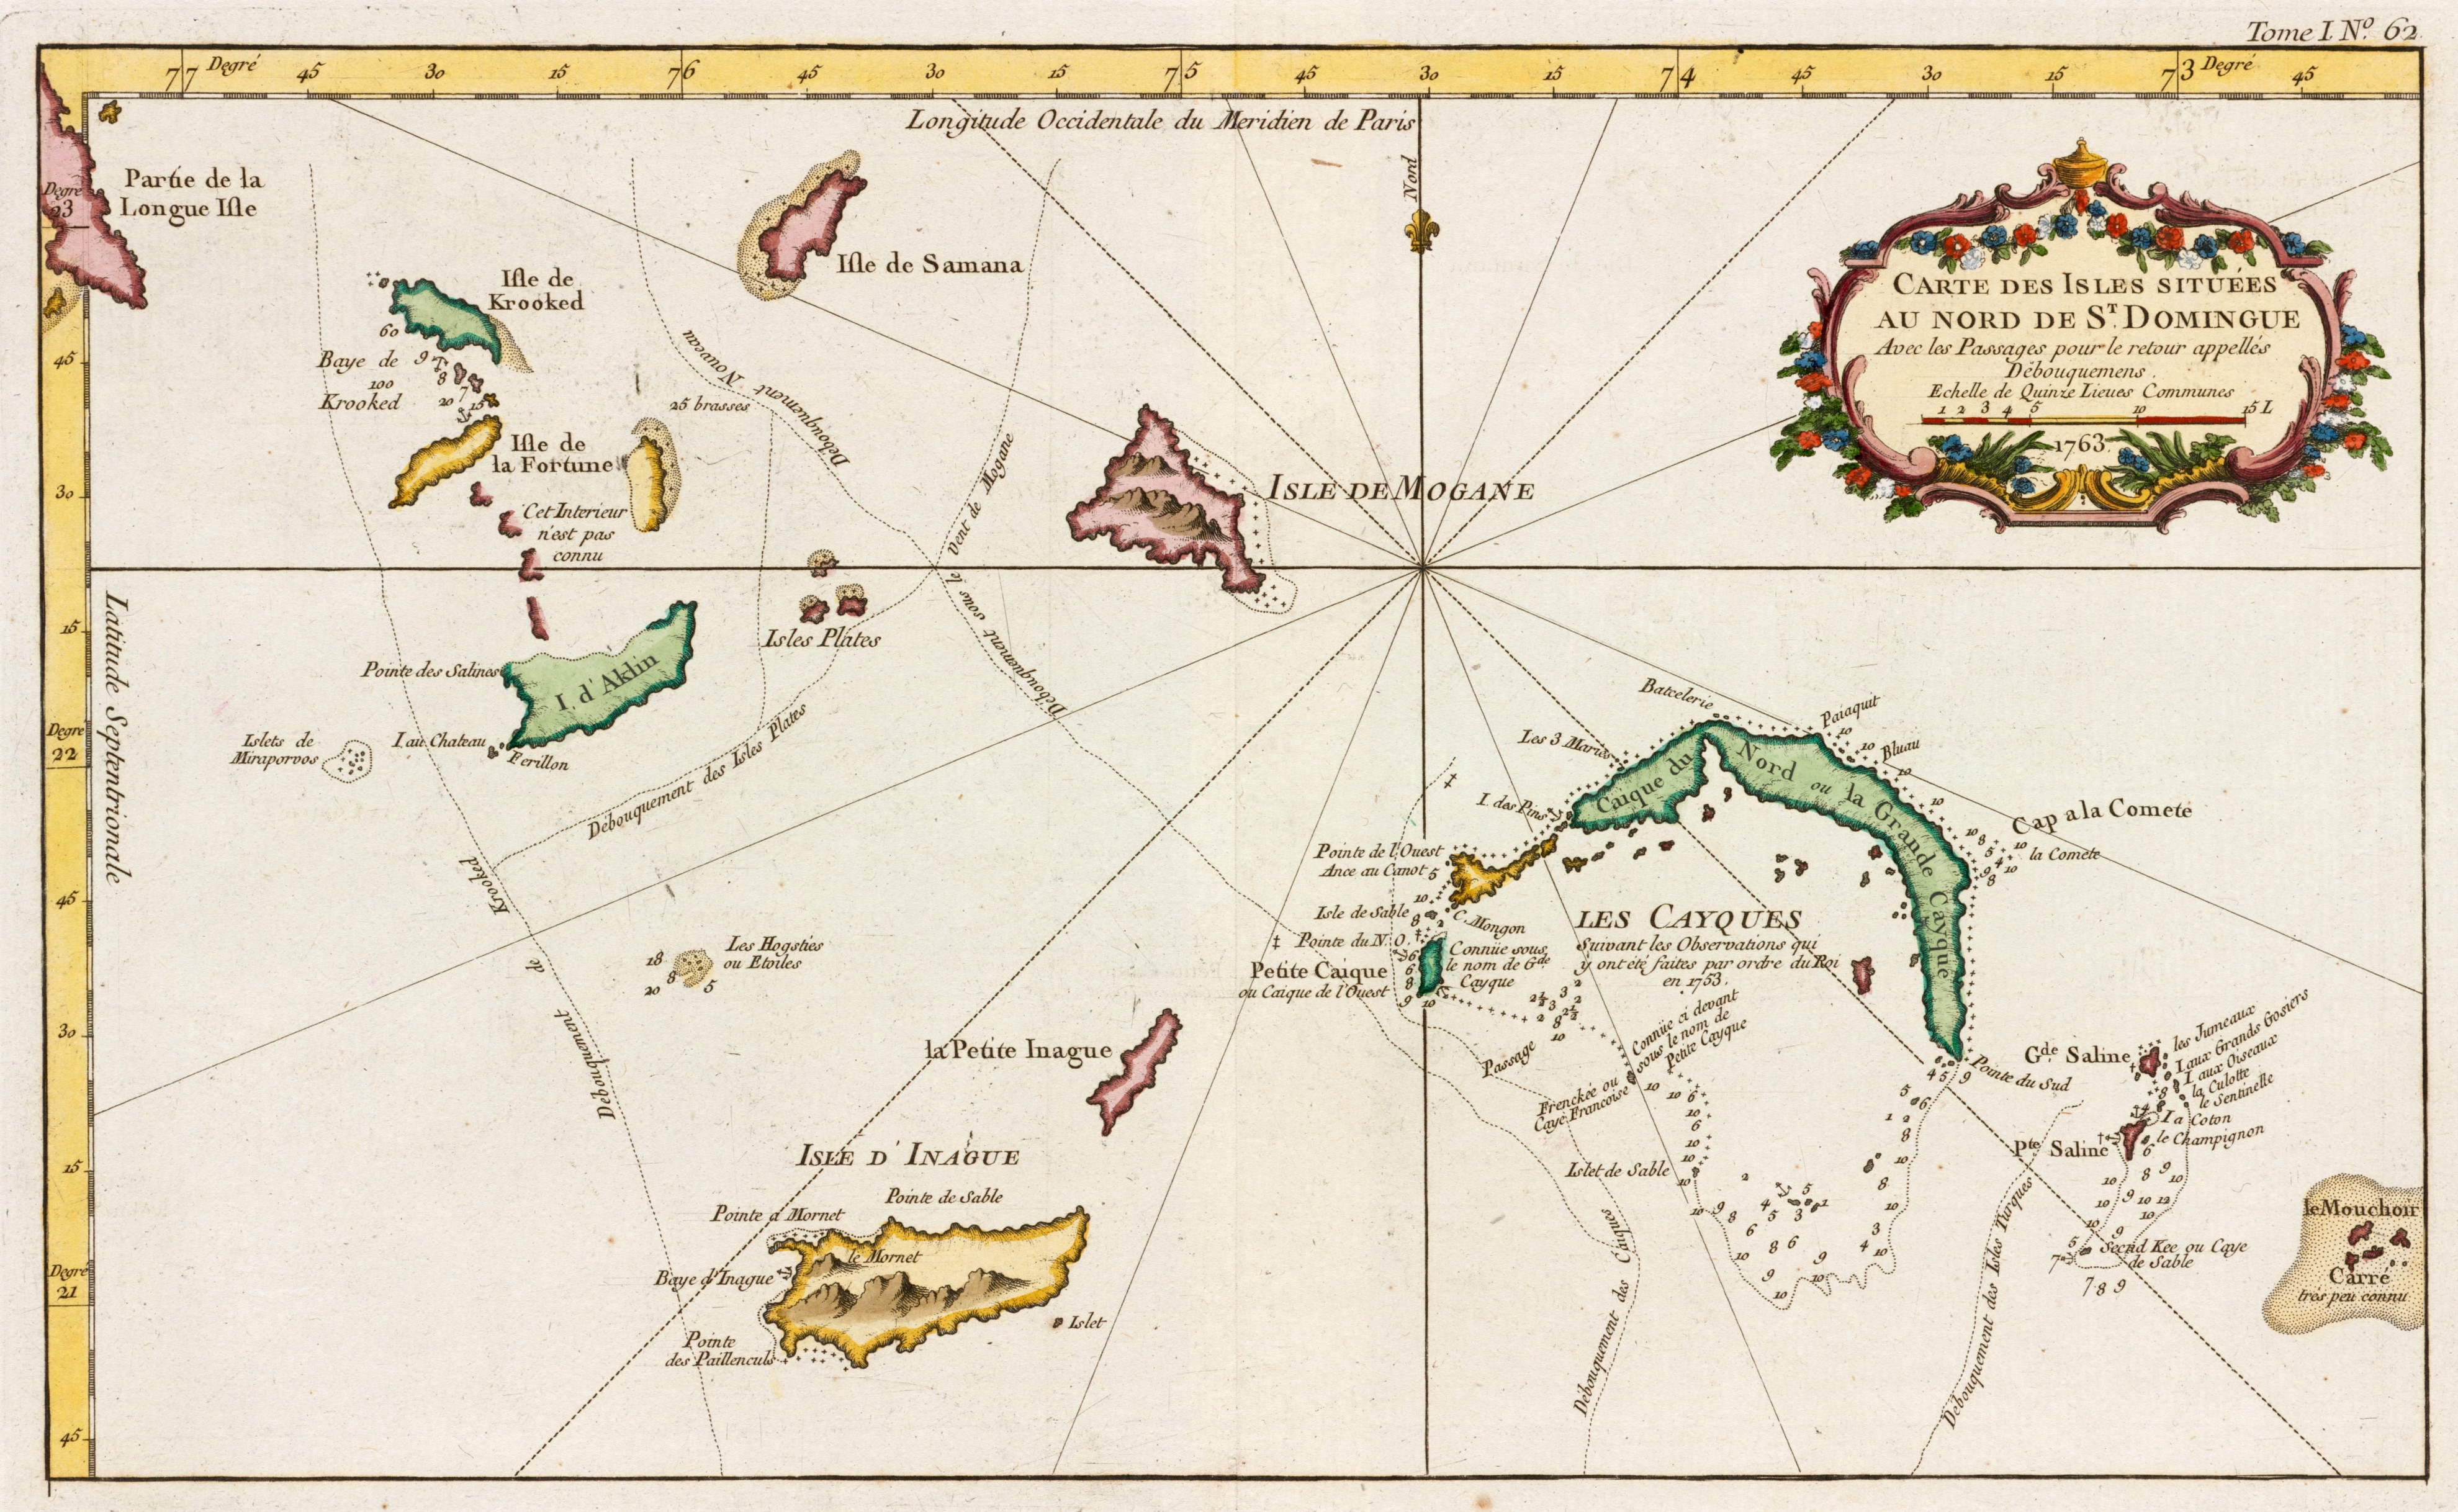 History of the Turks and Caicos Islands - Wikipedia